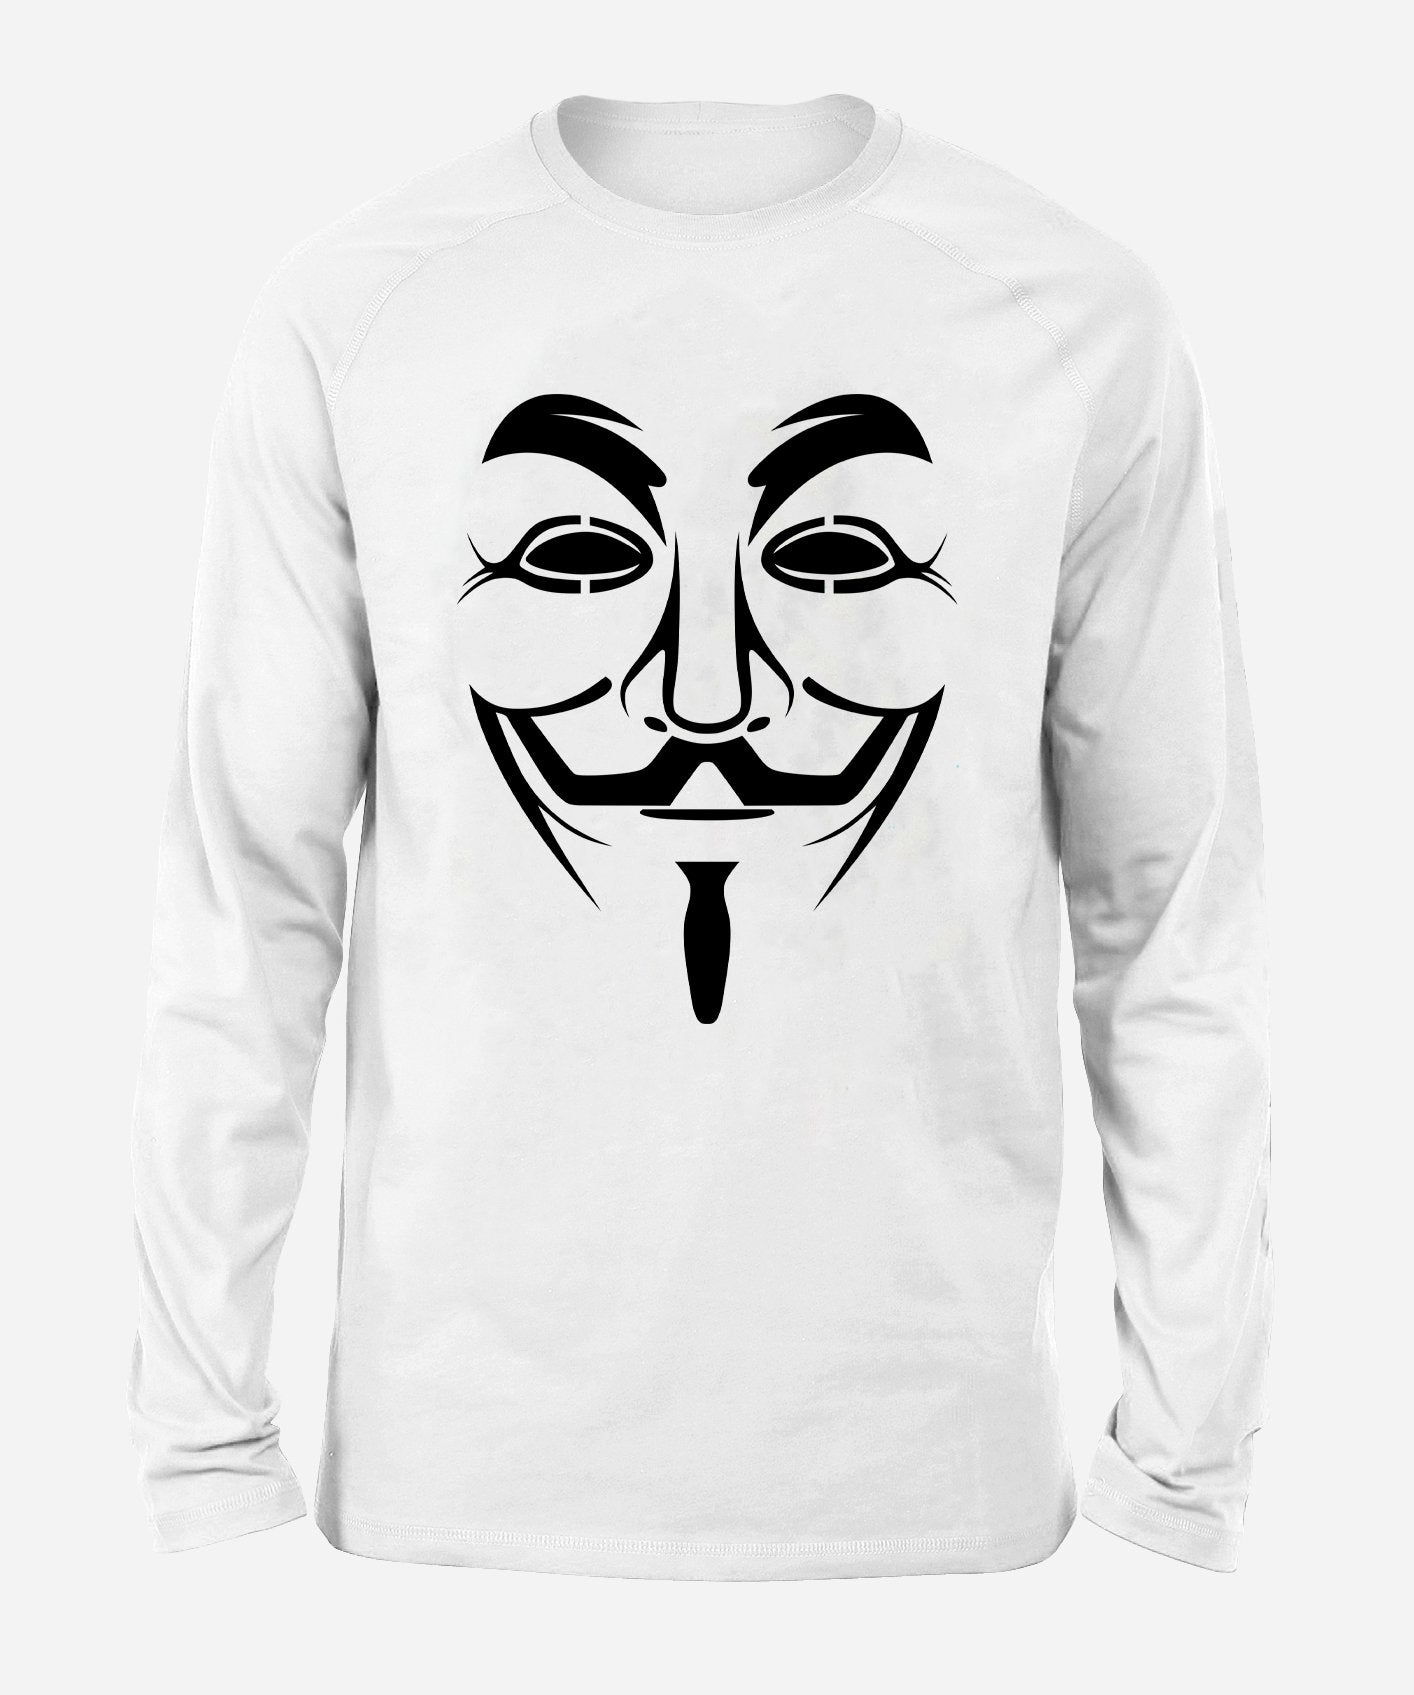 Vendetta Unisex Long Sleeve Shirt Long Sleeve Electro Threads